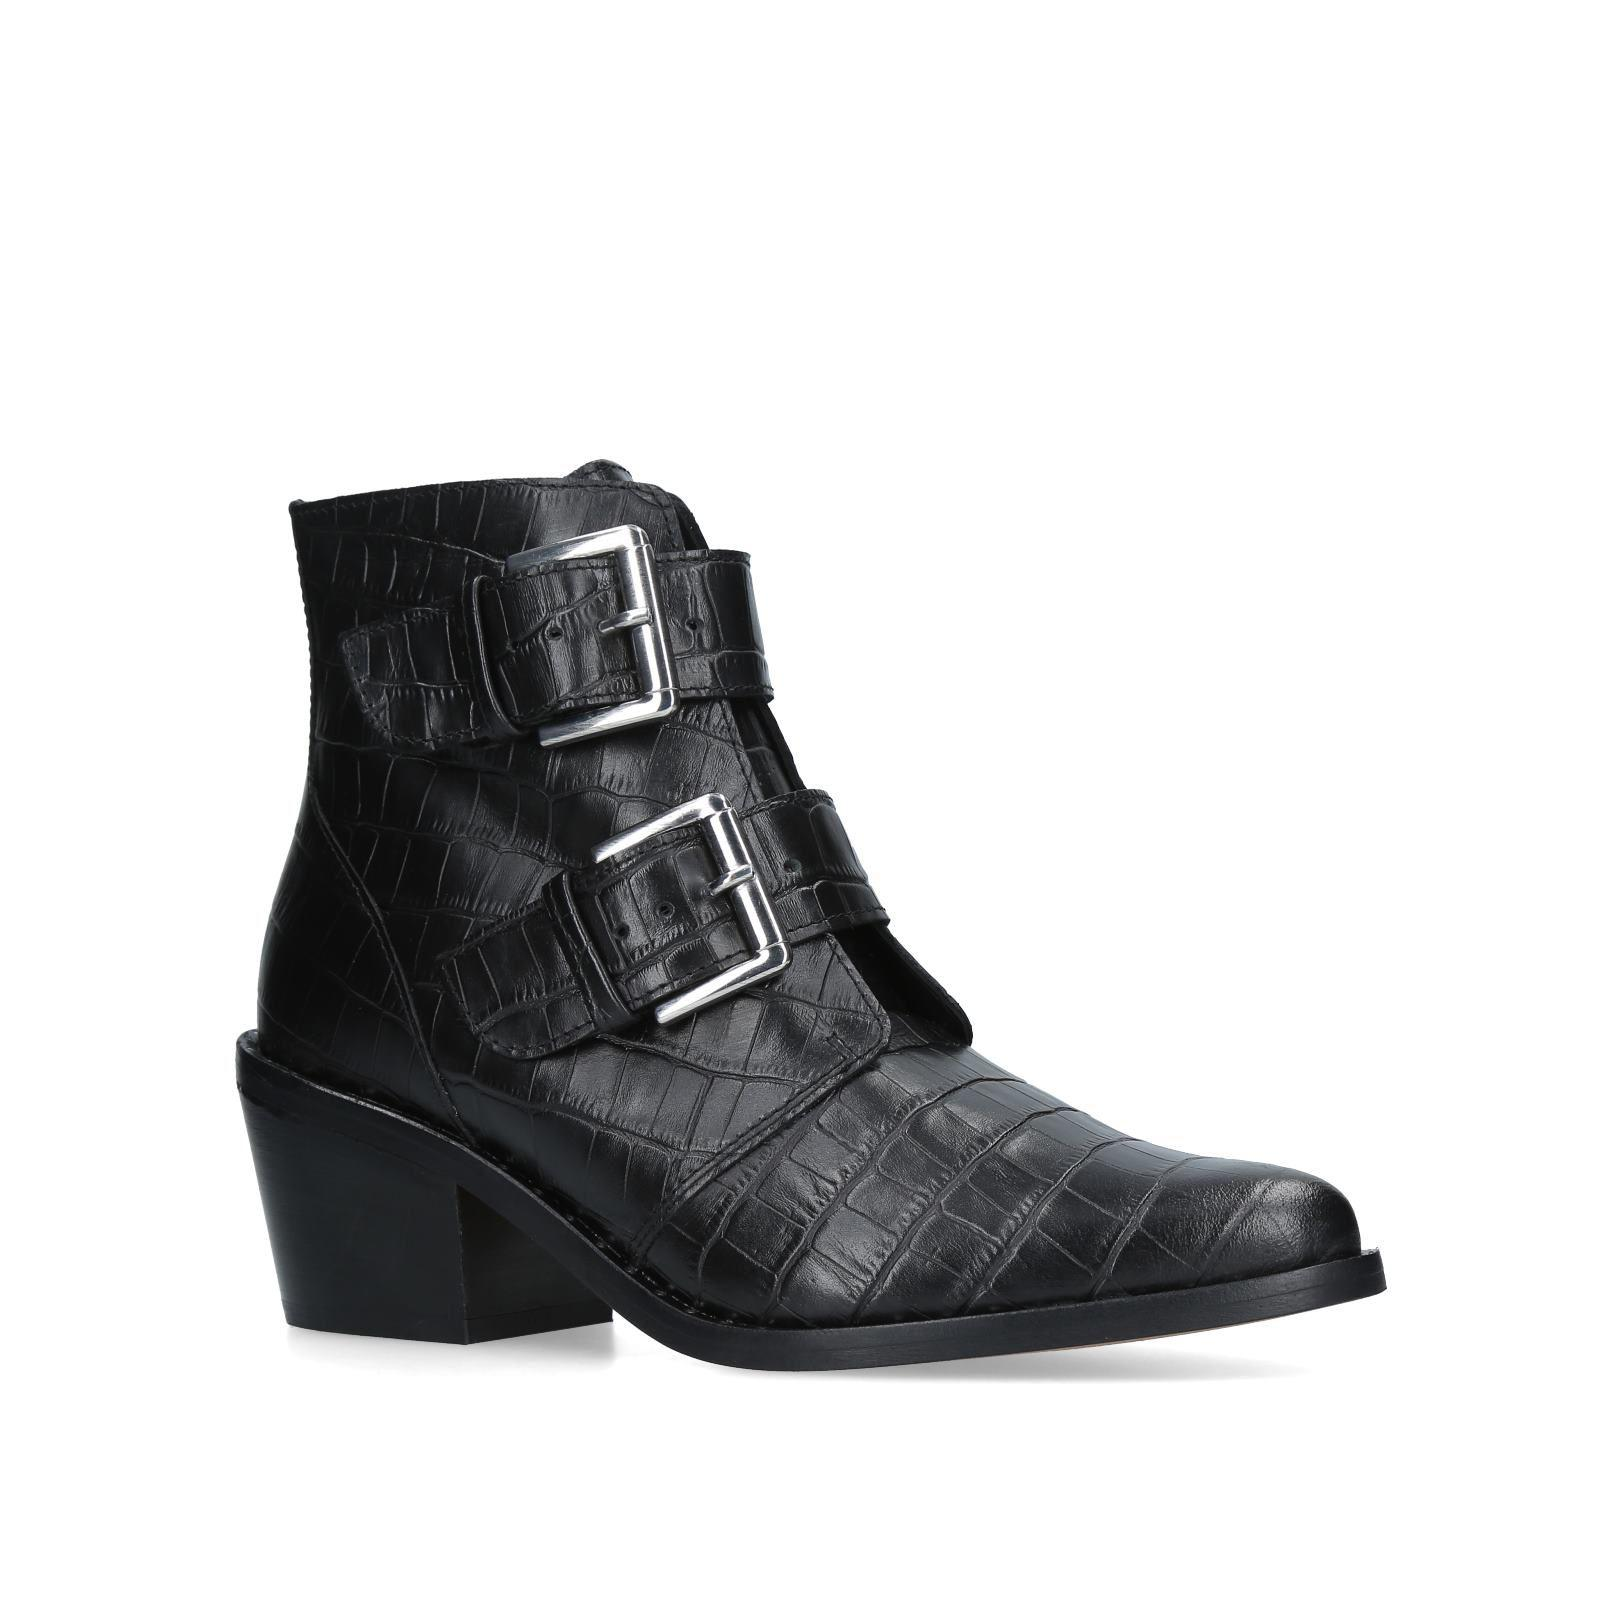 Buy Trendy Shoes Women Replay Anise Ankle boots Black